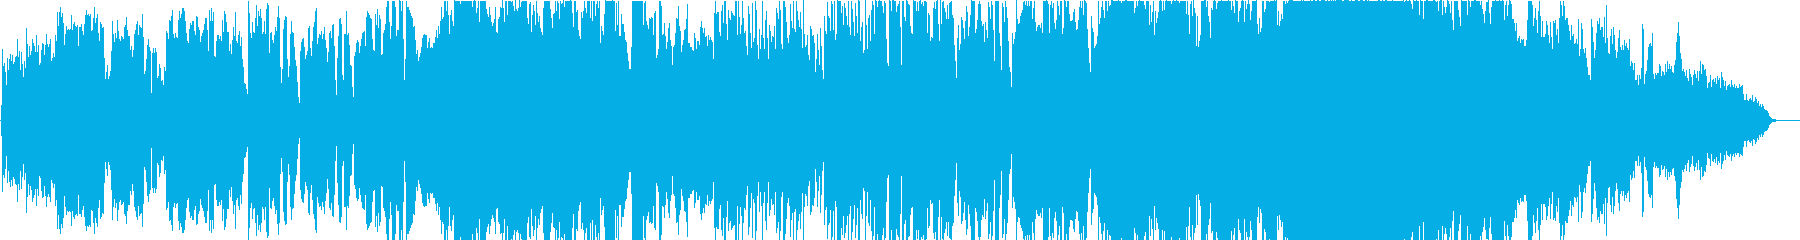 A bright and hearty, colorful song of Niko's reproduced waveform